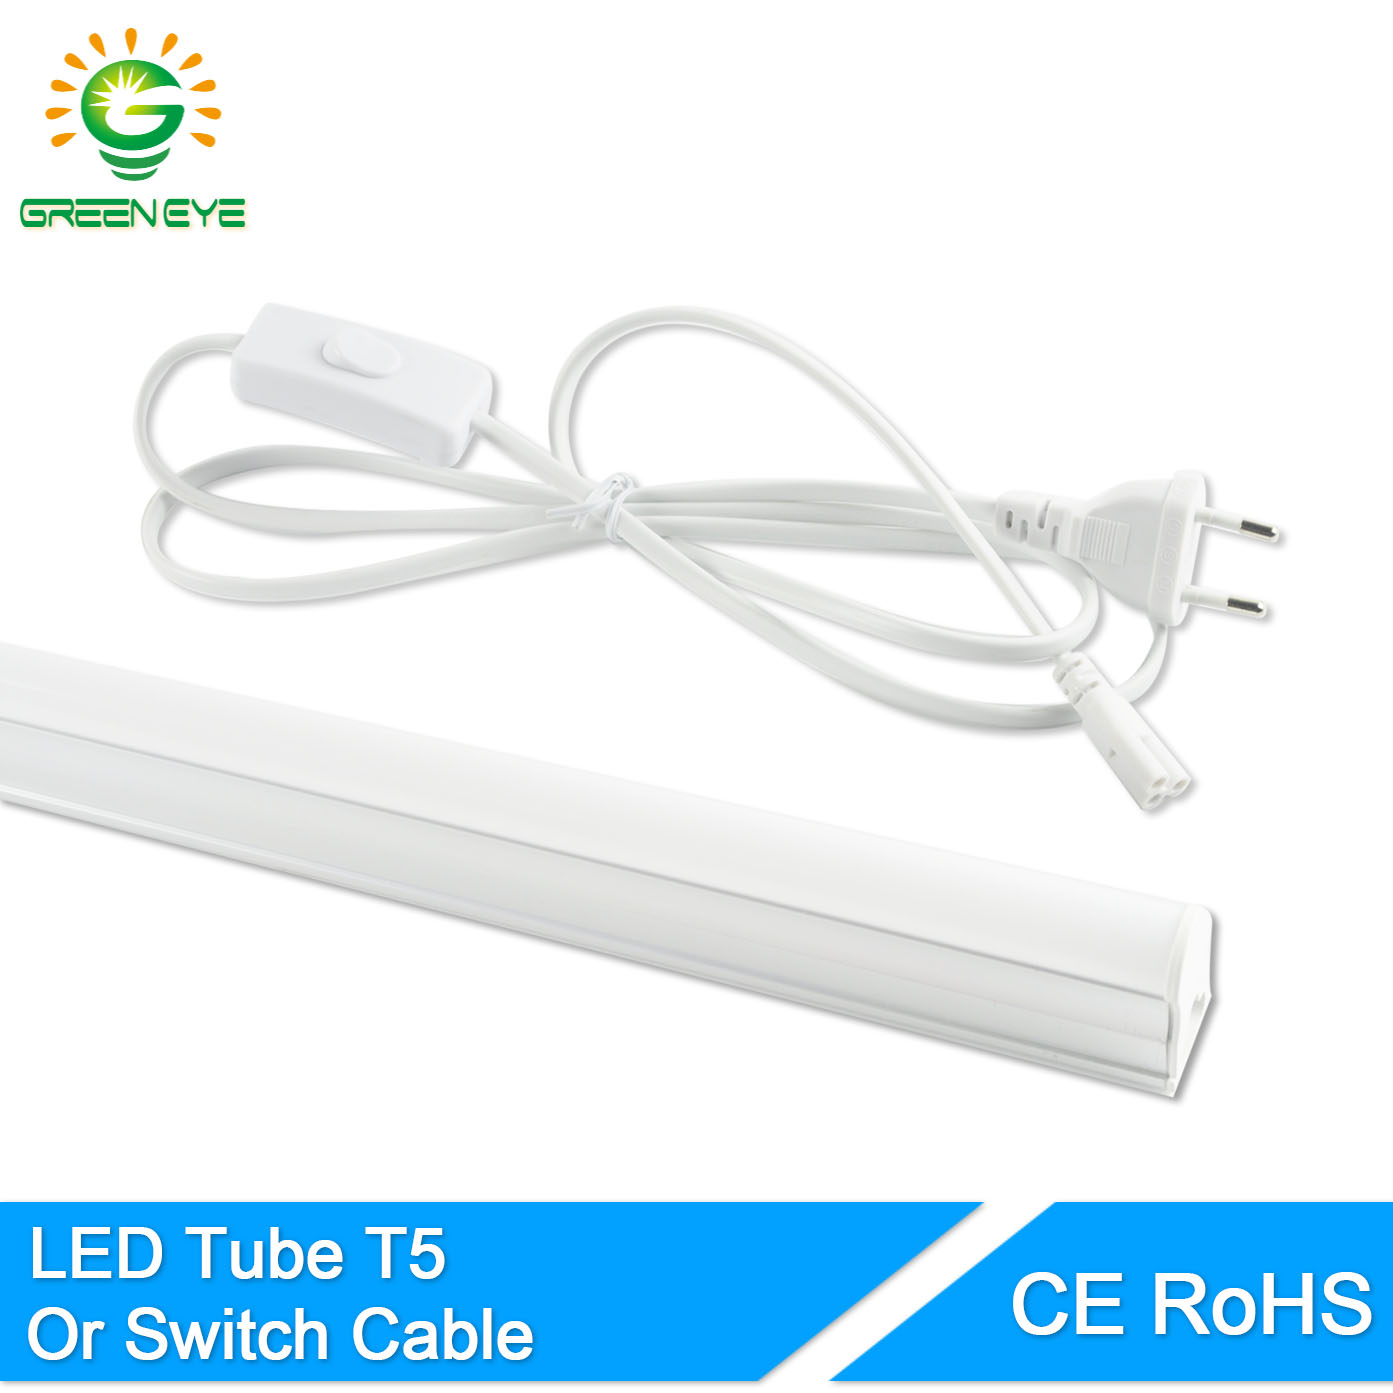 GreenEye EU Switch Cable Wire/Integrated LED Tube T5 Light 220v 240v 300mm 6w 600mm 10w Fluorescent T5 LED Lamp Cold White Warm цена